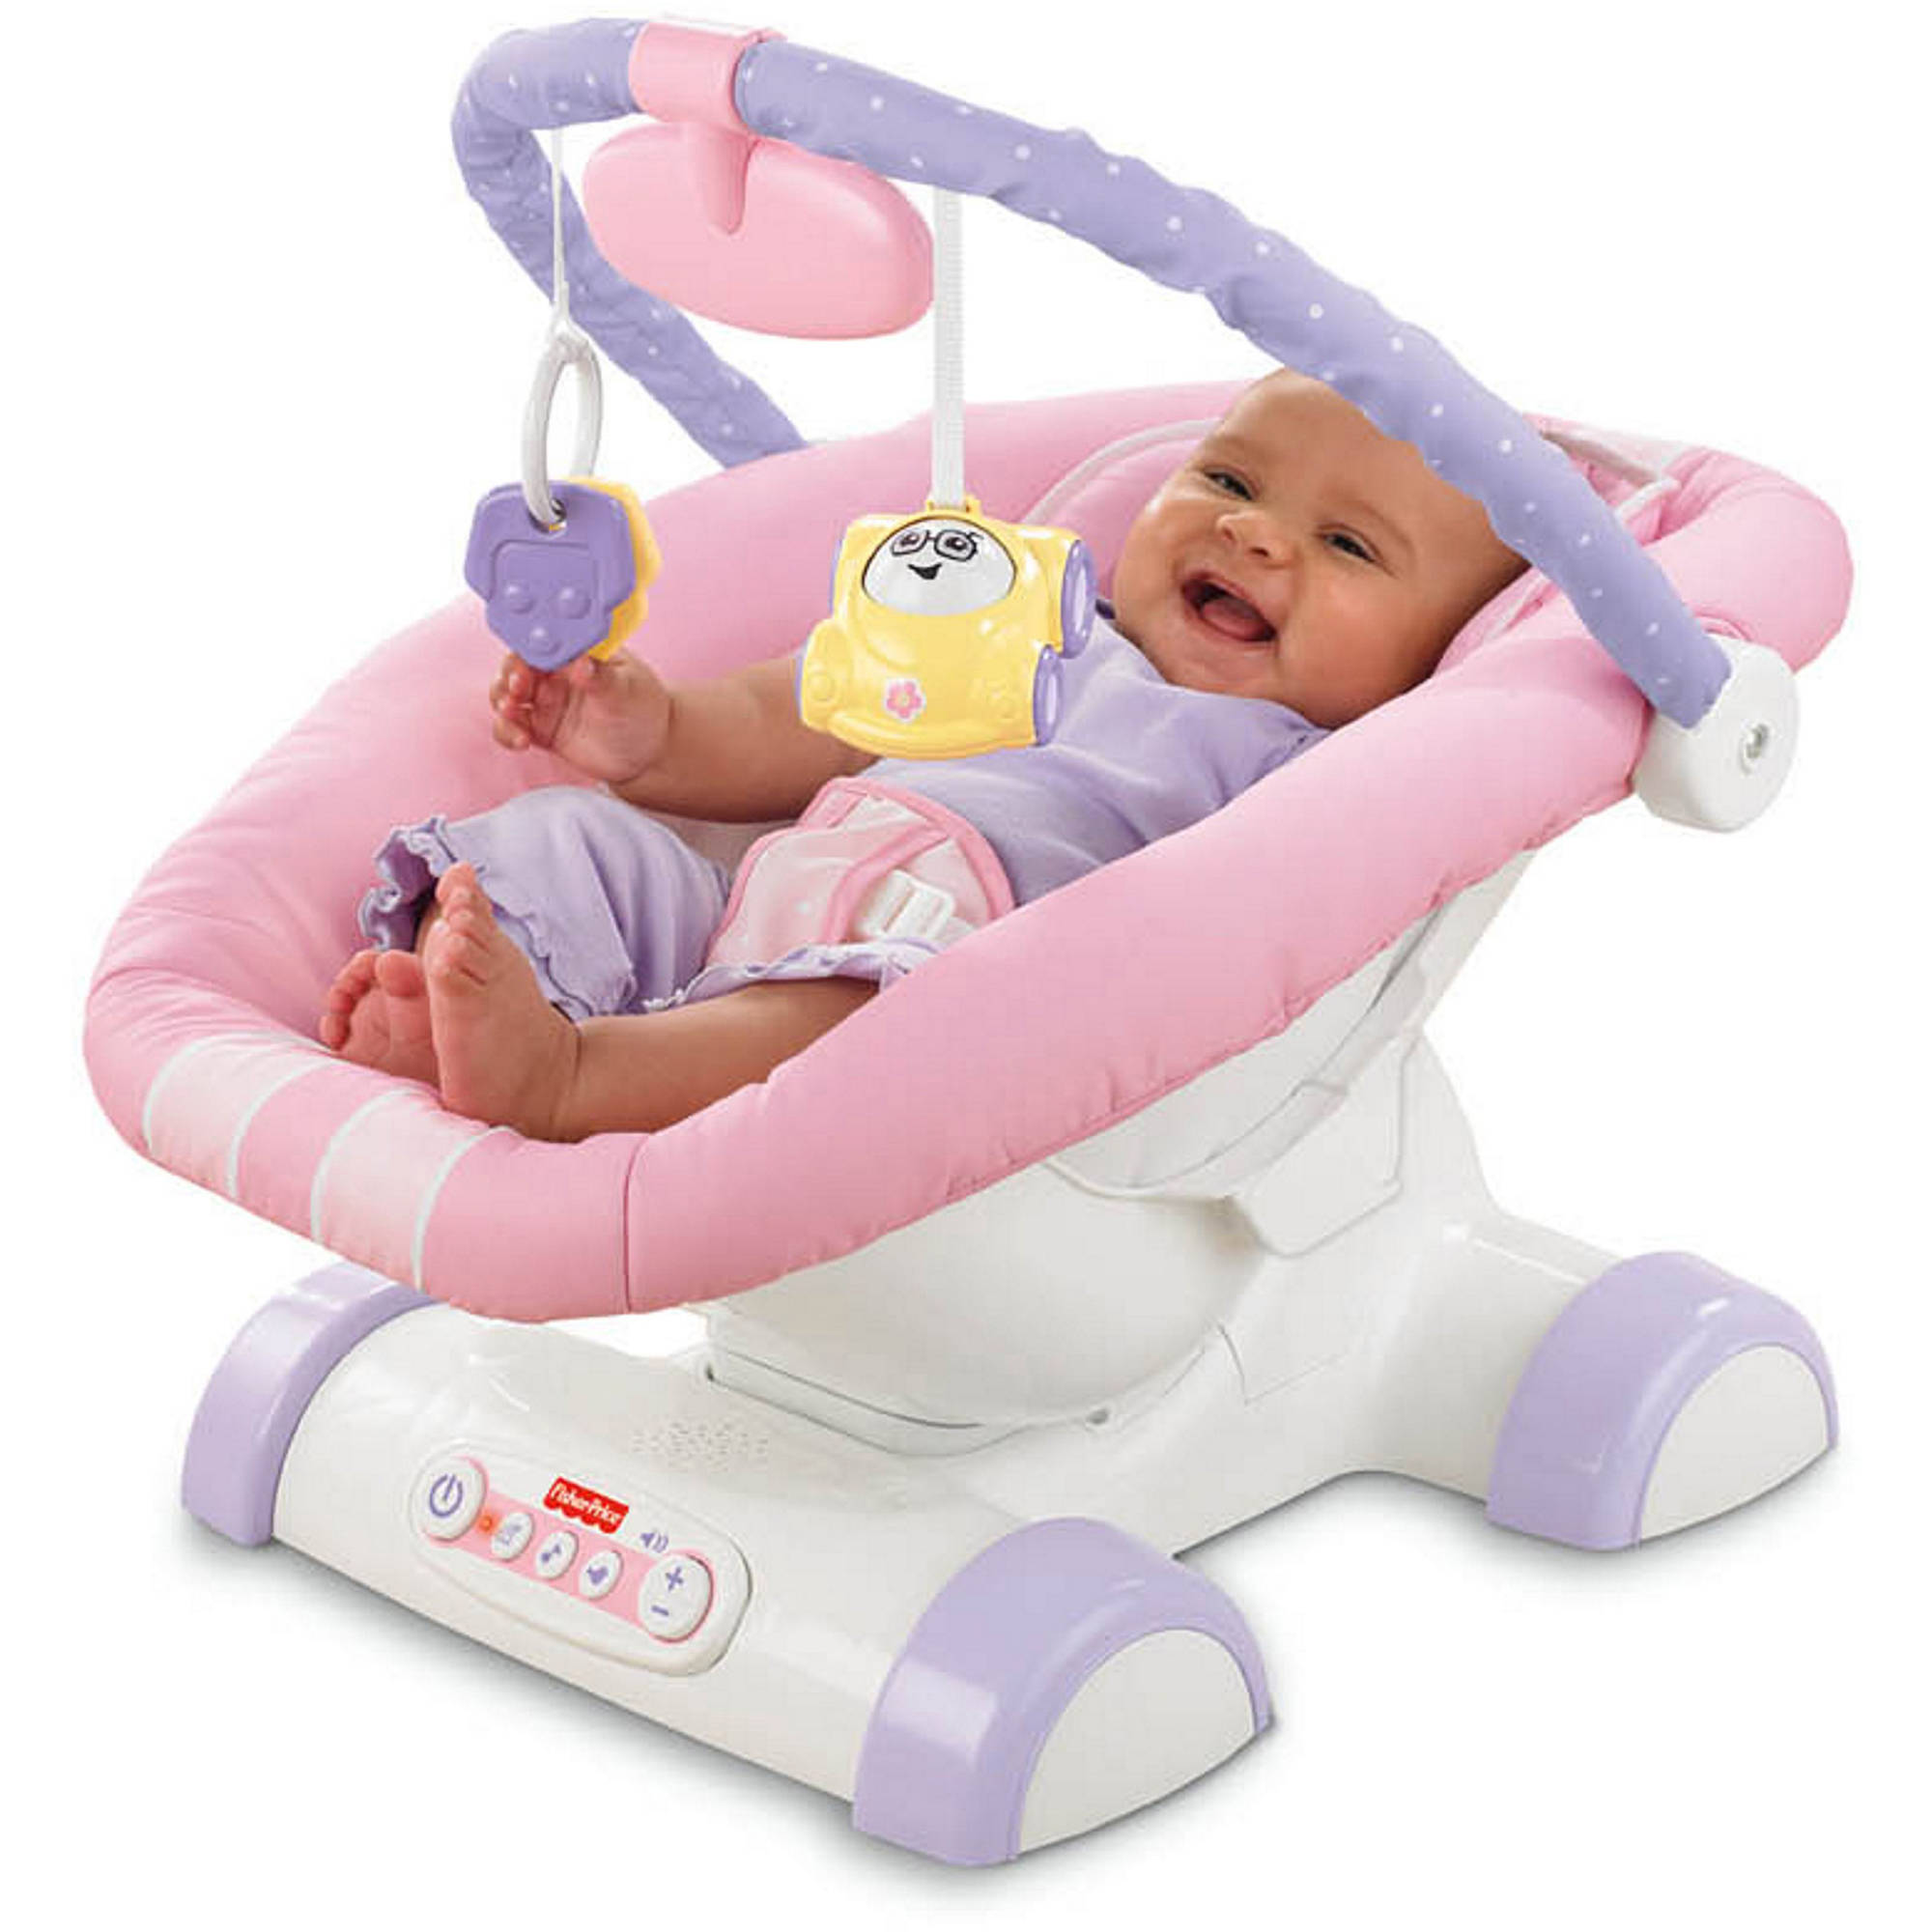 Fisher-Price - Cruisin' Motion Soother, Pink